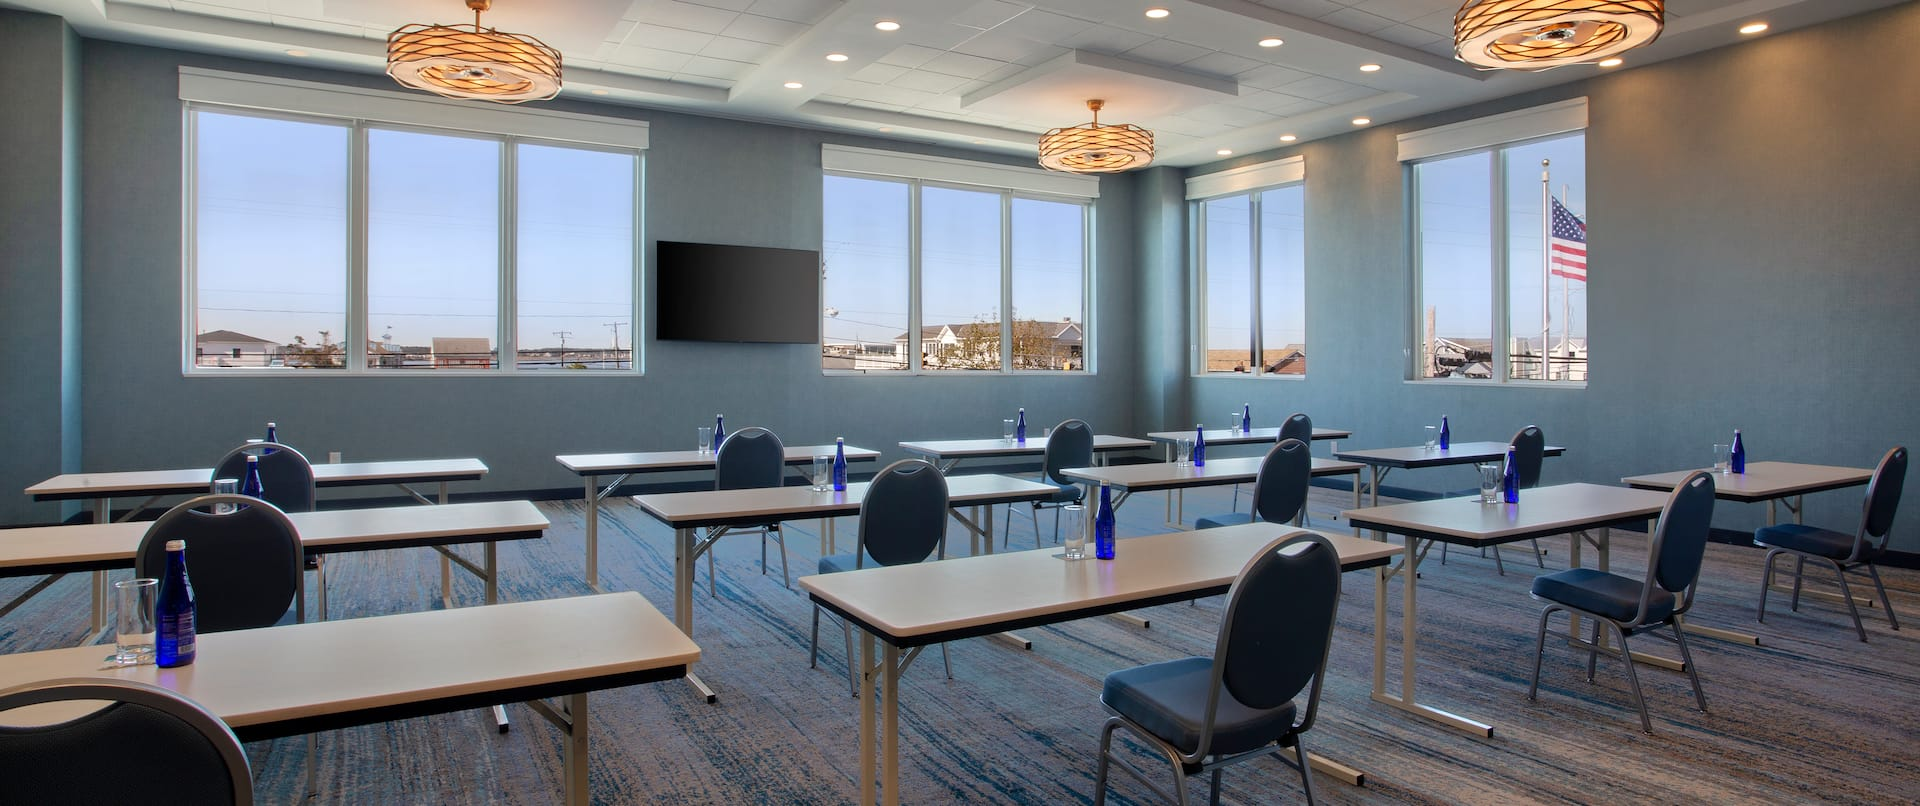 Meeting Room Tables, Chairs and Windows